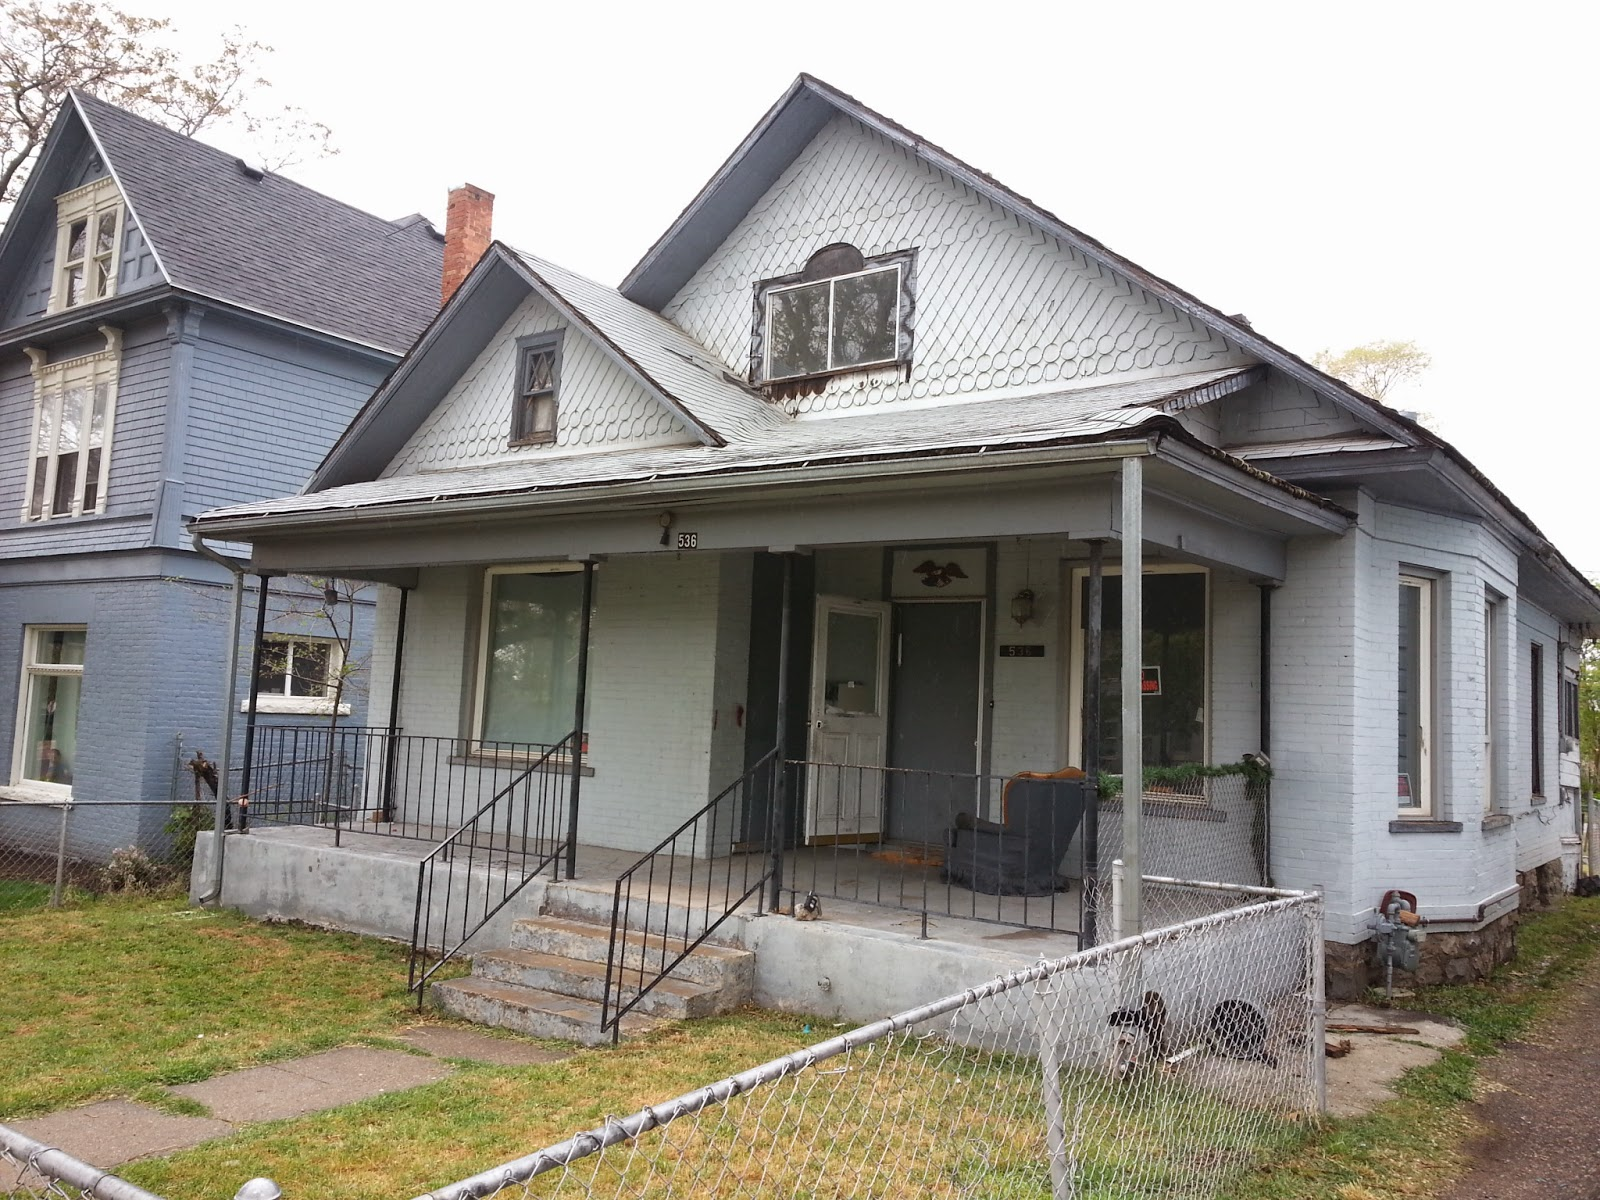 Ogden insights for sale historic short sale fixer upper for Fixer upper homes for sale by owner